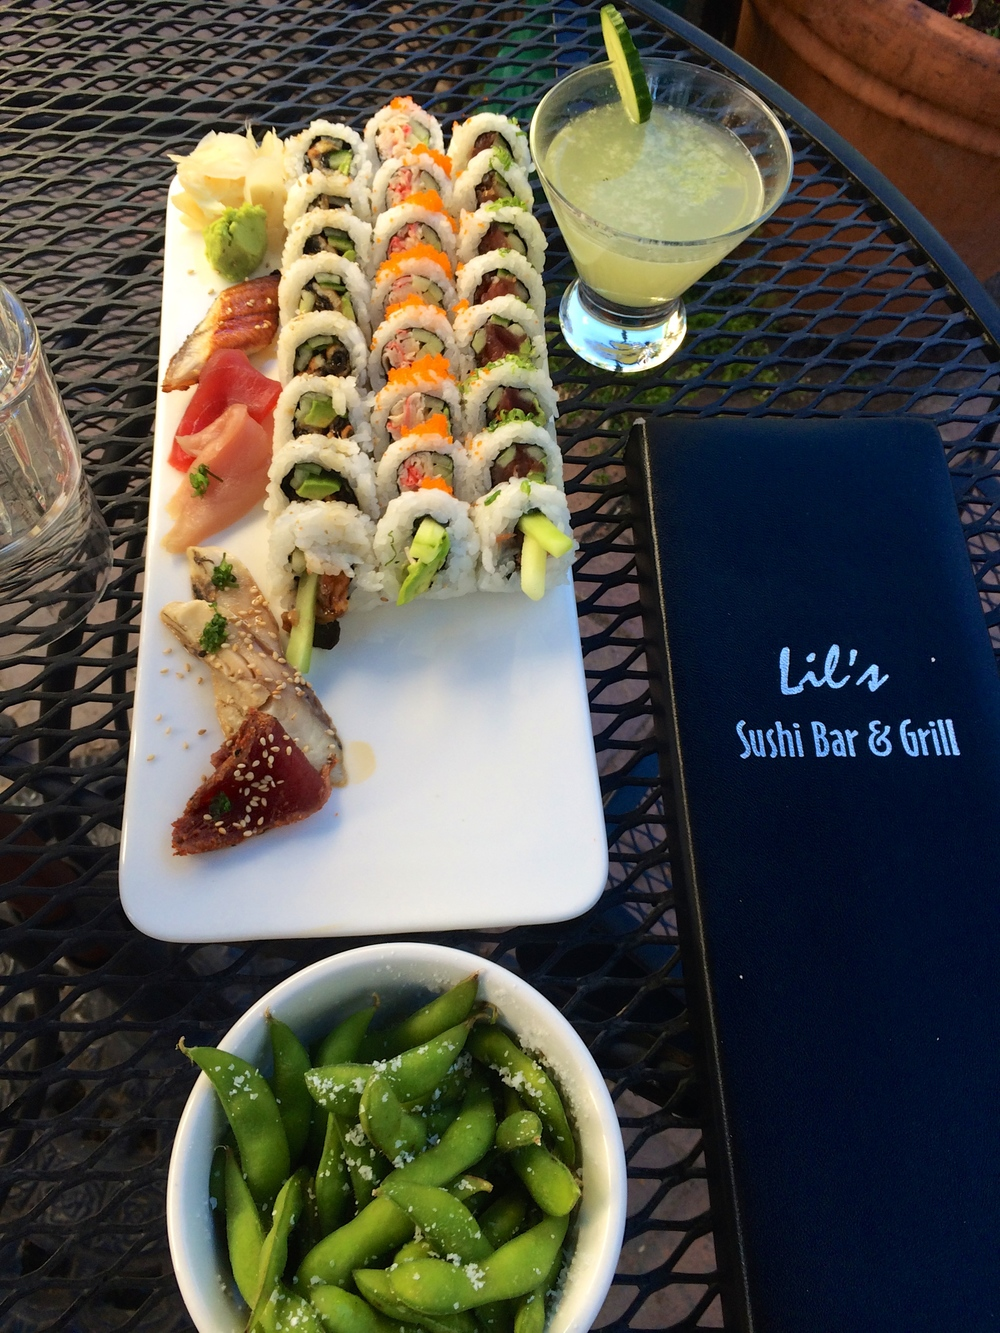 Sushi!! -Happy Hour at Lilly's Sushi Bar and Grill on Elk Ave.  After Nights of Noodles, Cravin' Sushi